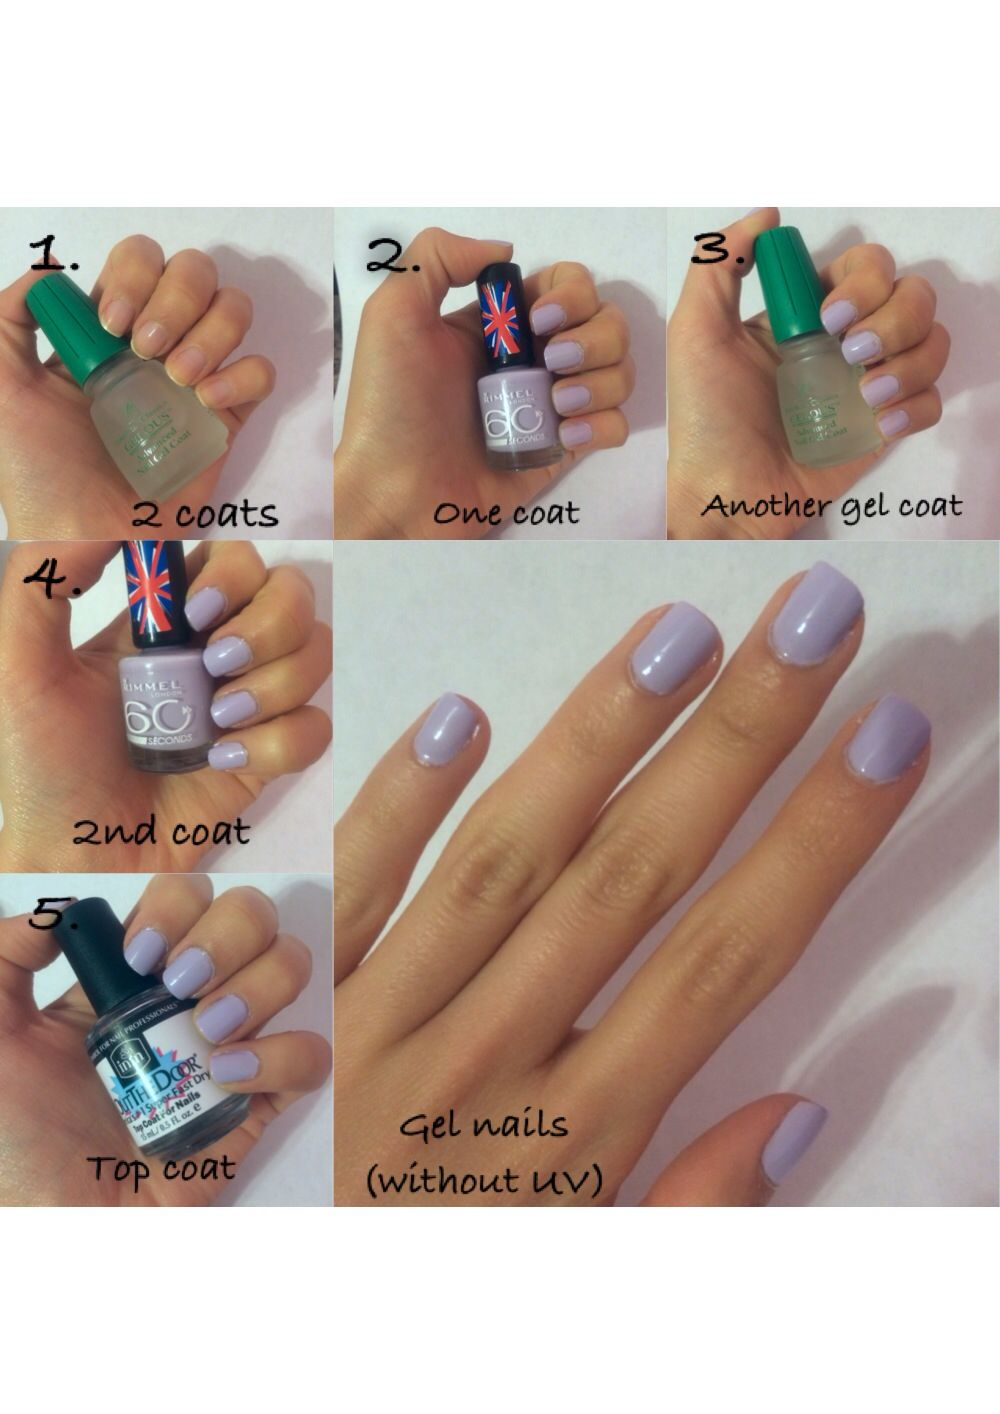 Easy gel nails without uv using gelous gel coat any